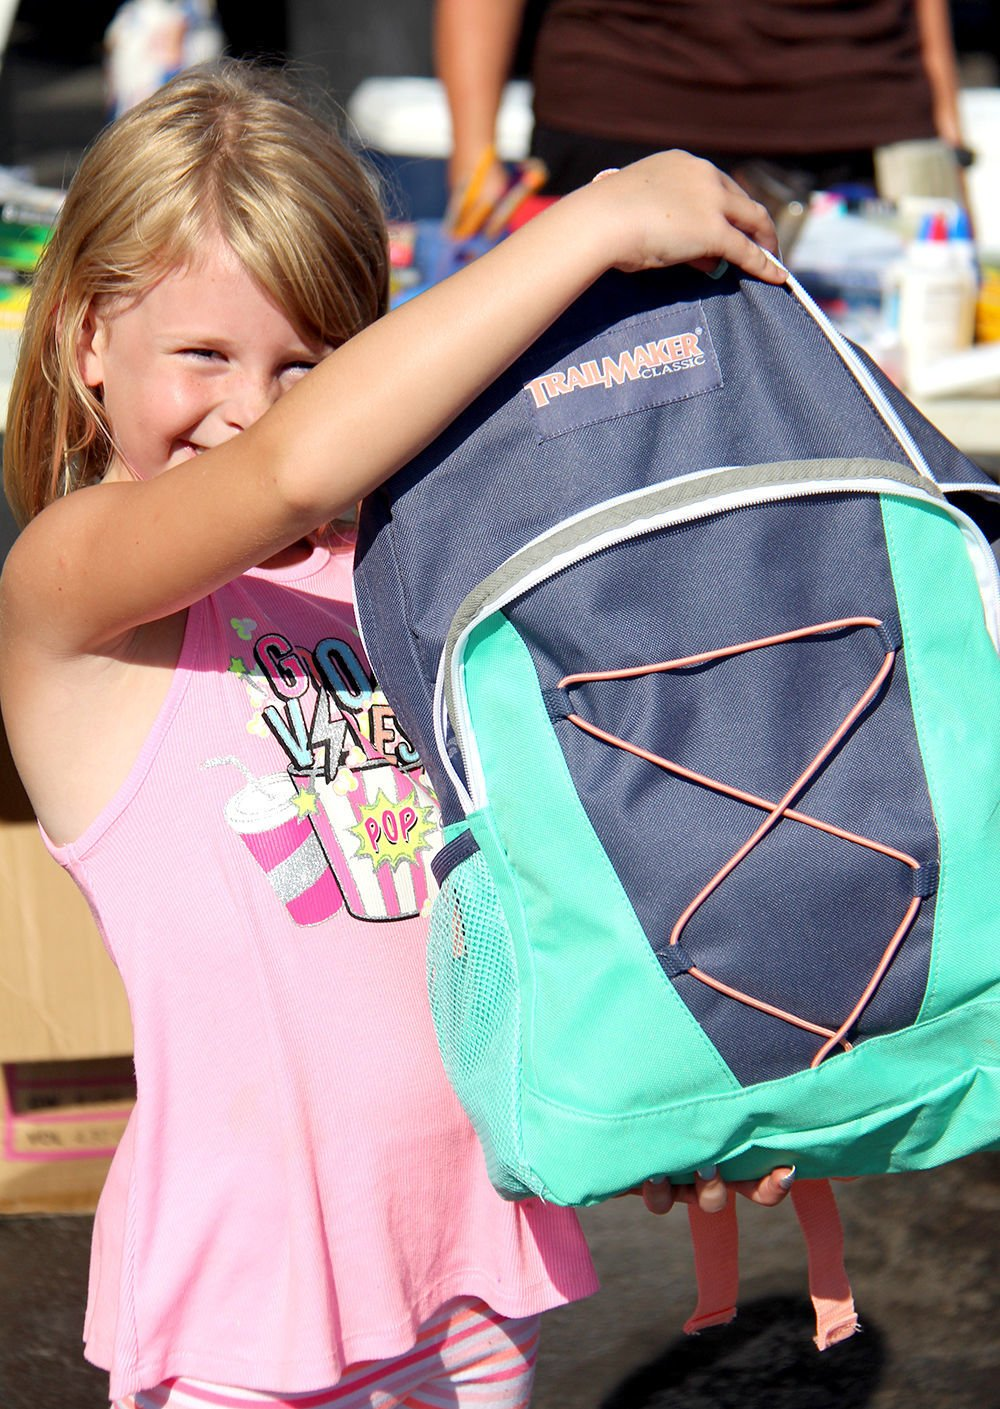 Backpacks for back-to-school